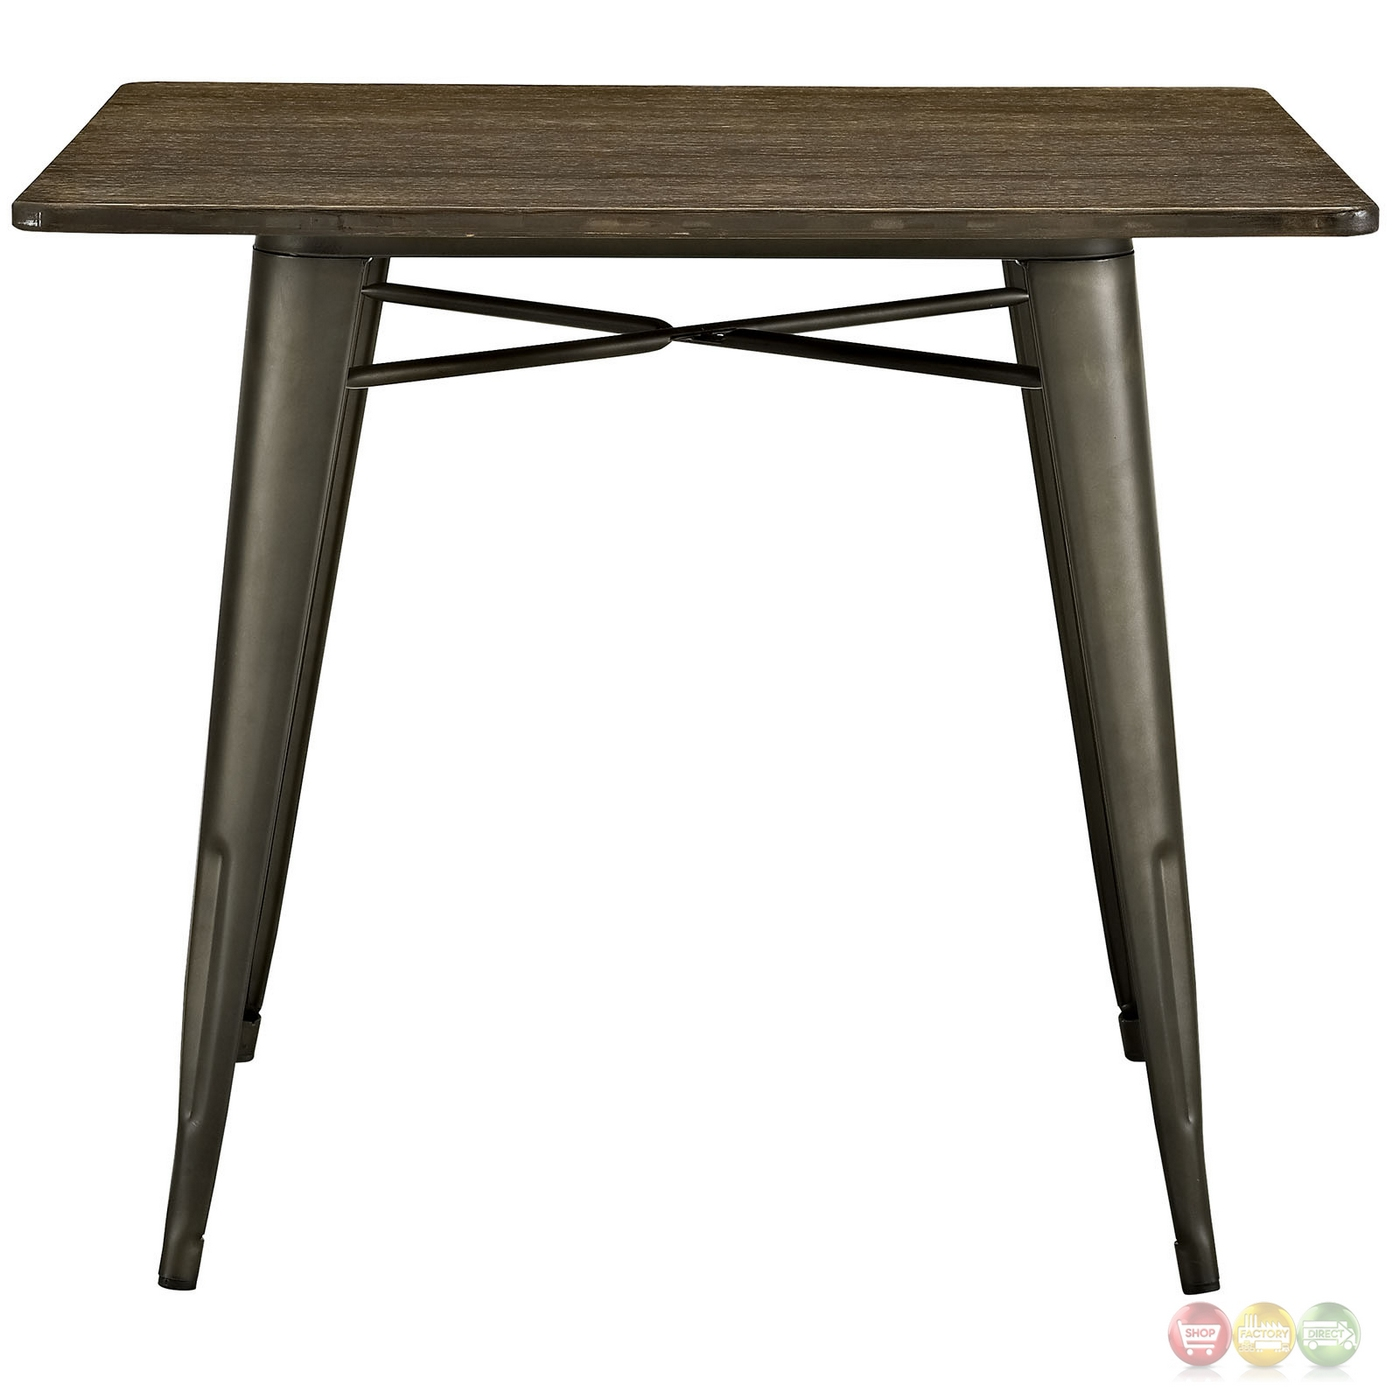 Alacrity Industrial 36 Square Wood Dining Table With Steel Legs Brown